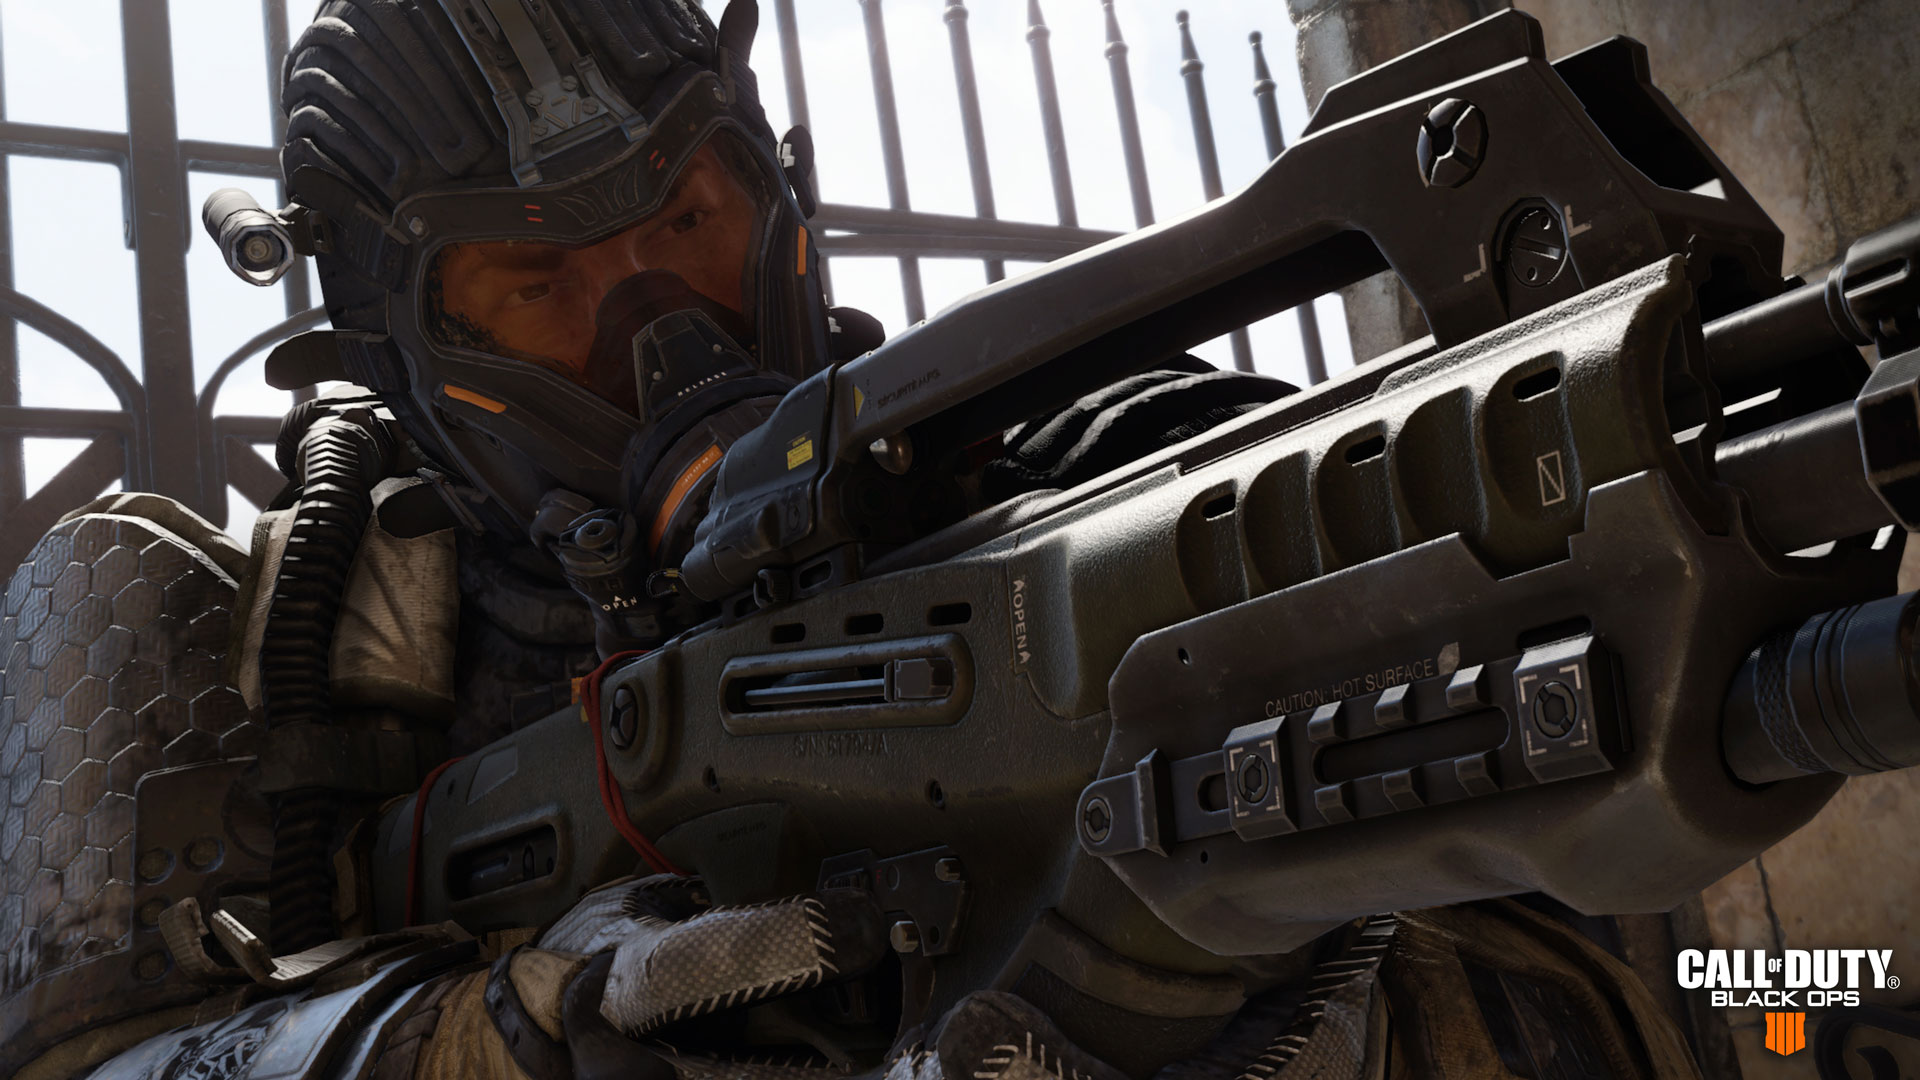 This Week in Call of Duty® - February 17 - Image 2